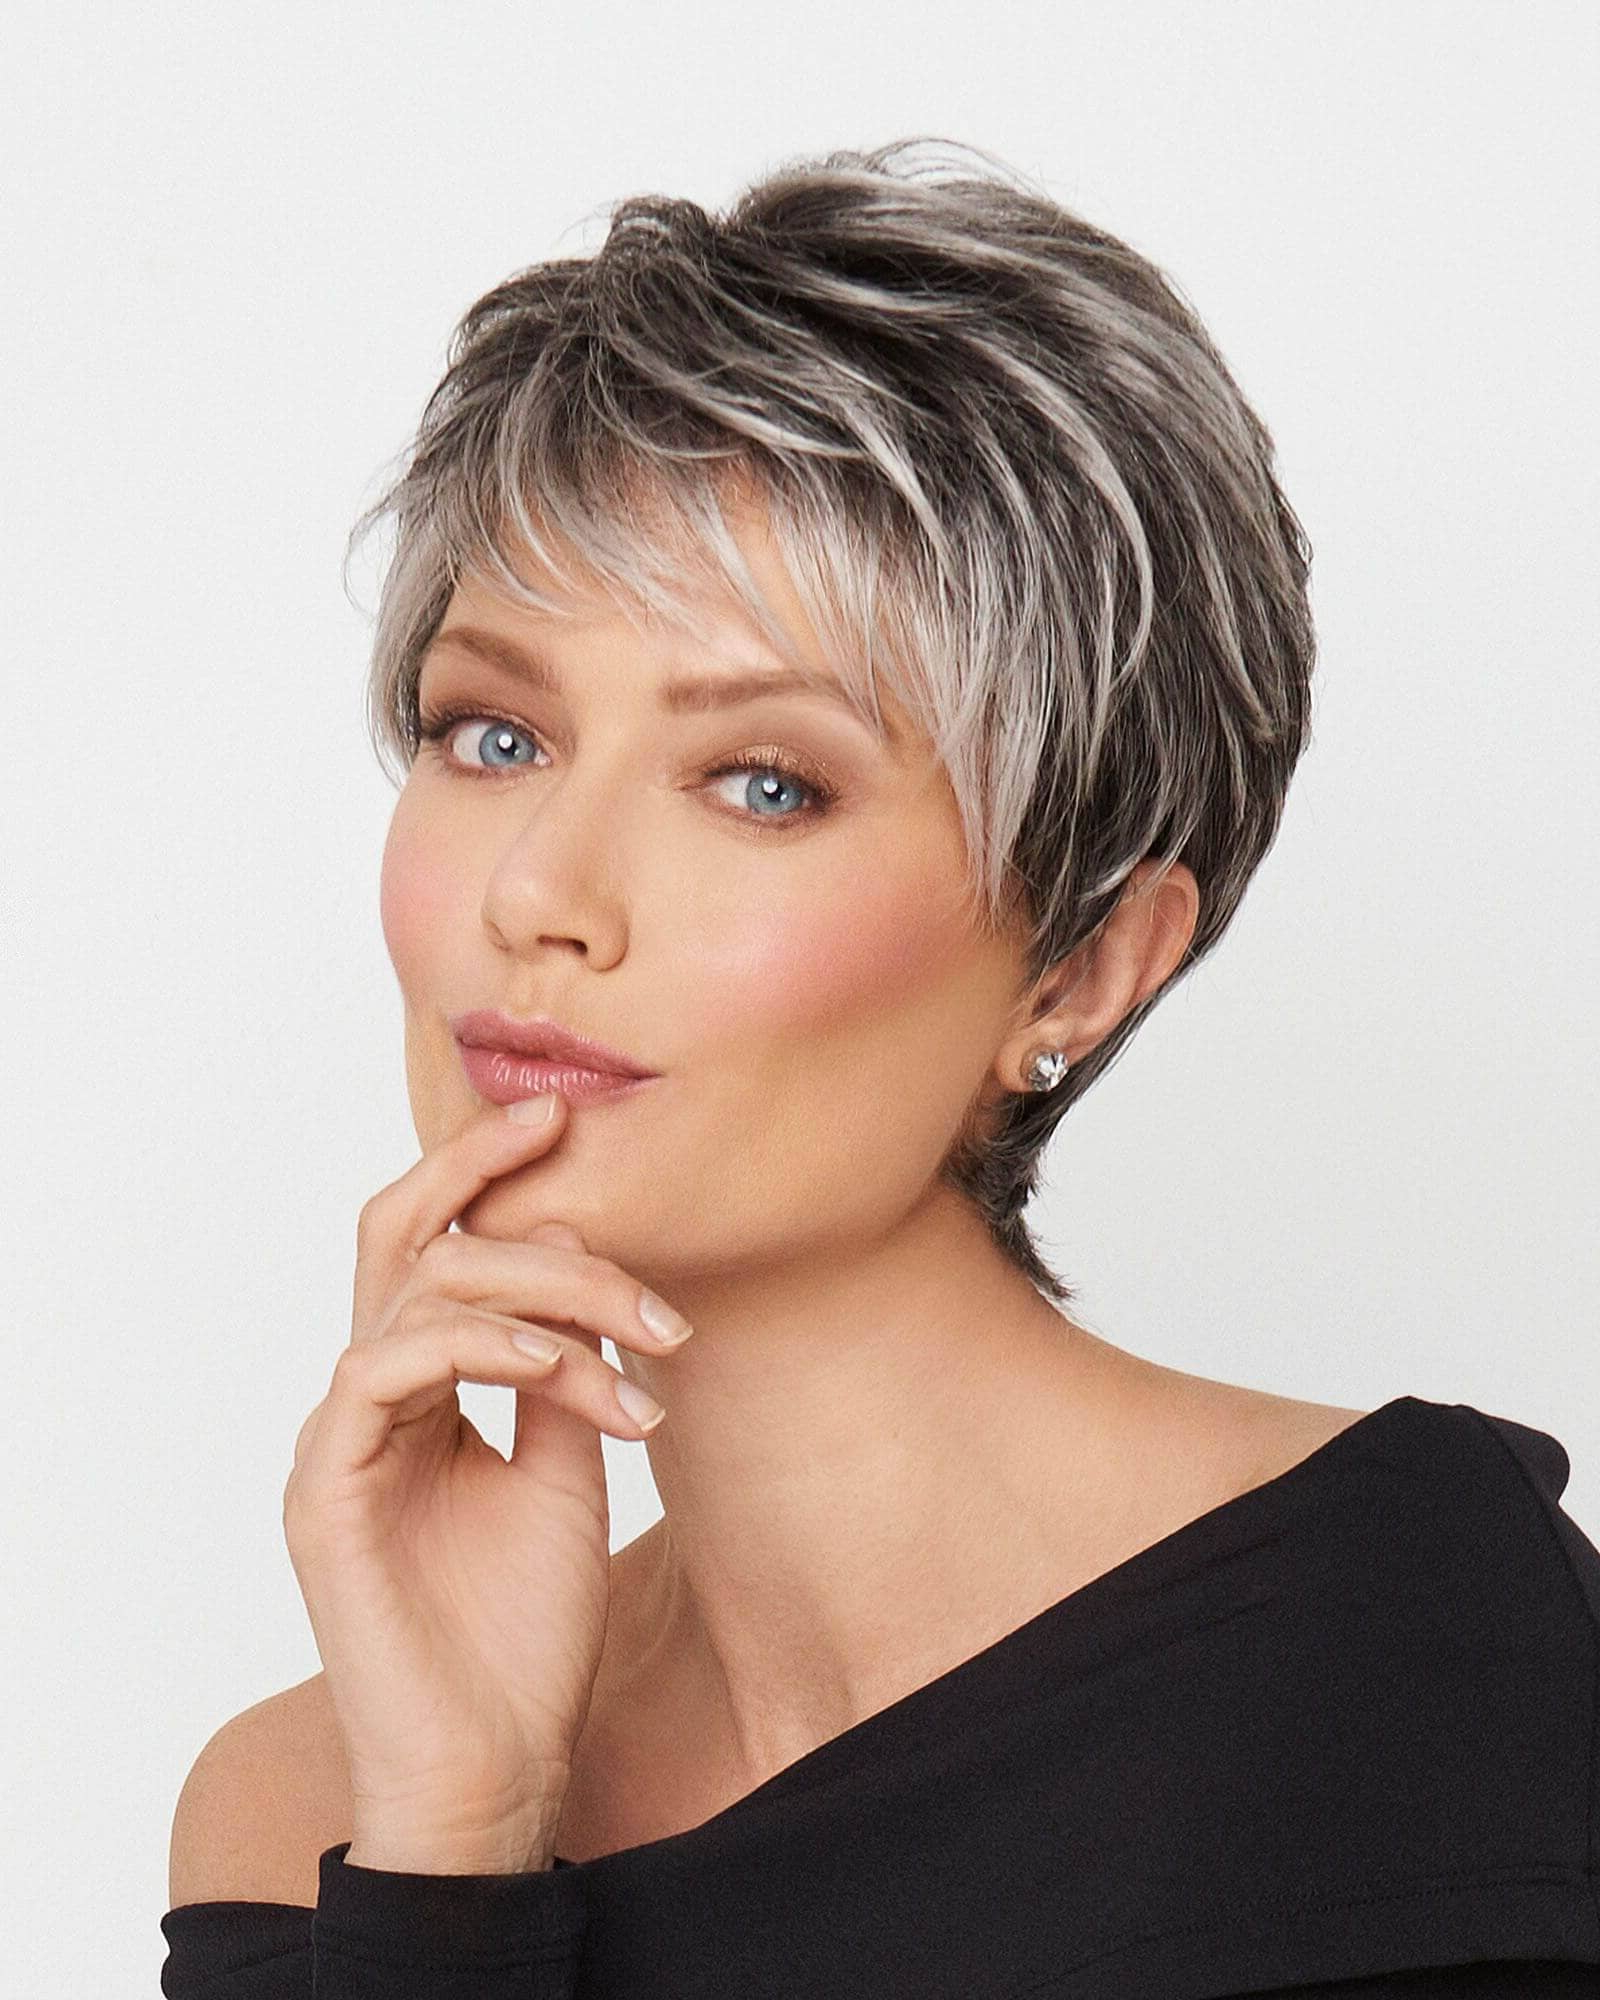 50 Pixie Haircuts You'll See Trending In 2018 Regarding Sexy Pixie Hairstyles With Rocker Texture (View 11 of 20)